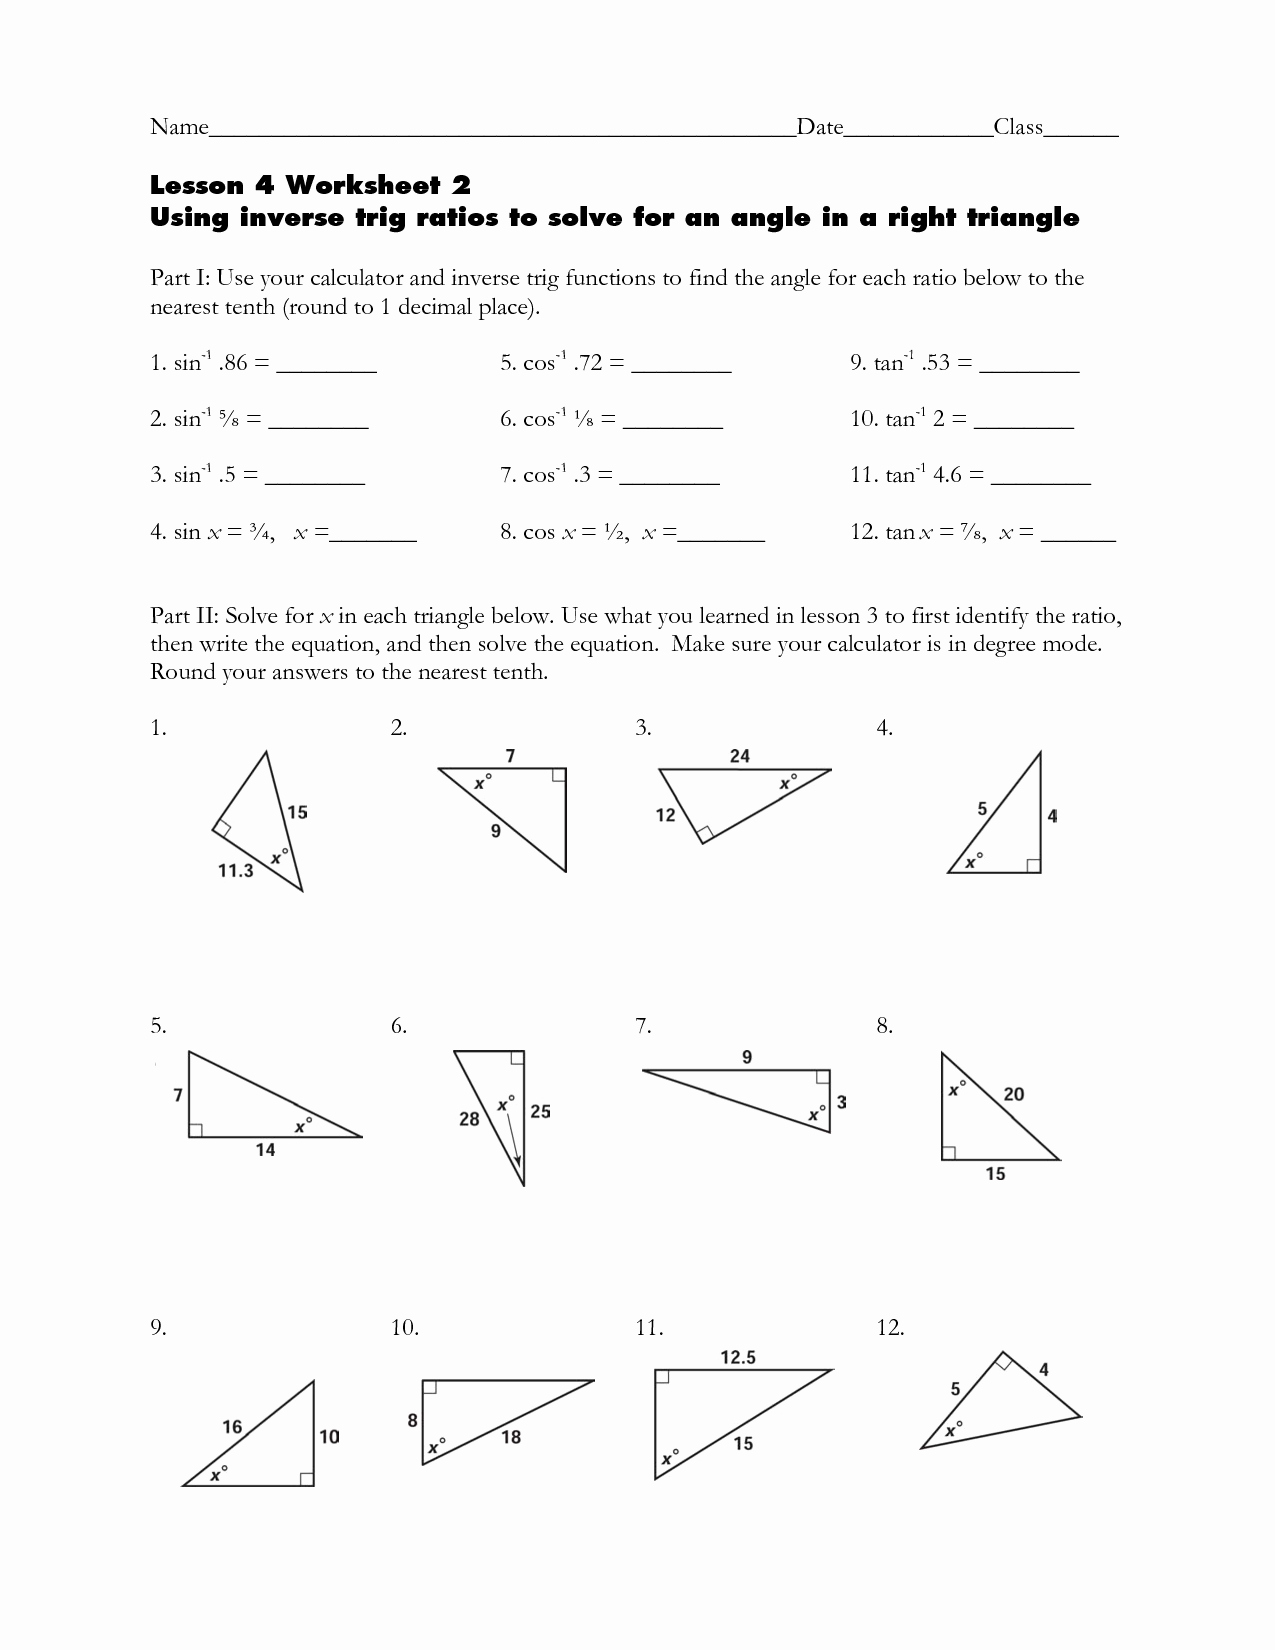 Inverse Trigonometric Functions Worksheet Unique Trigonometry Worksheets Clipground